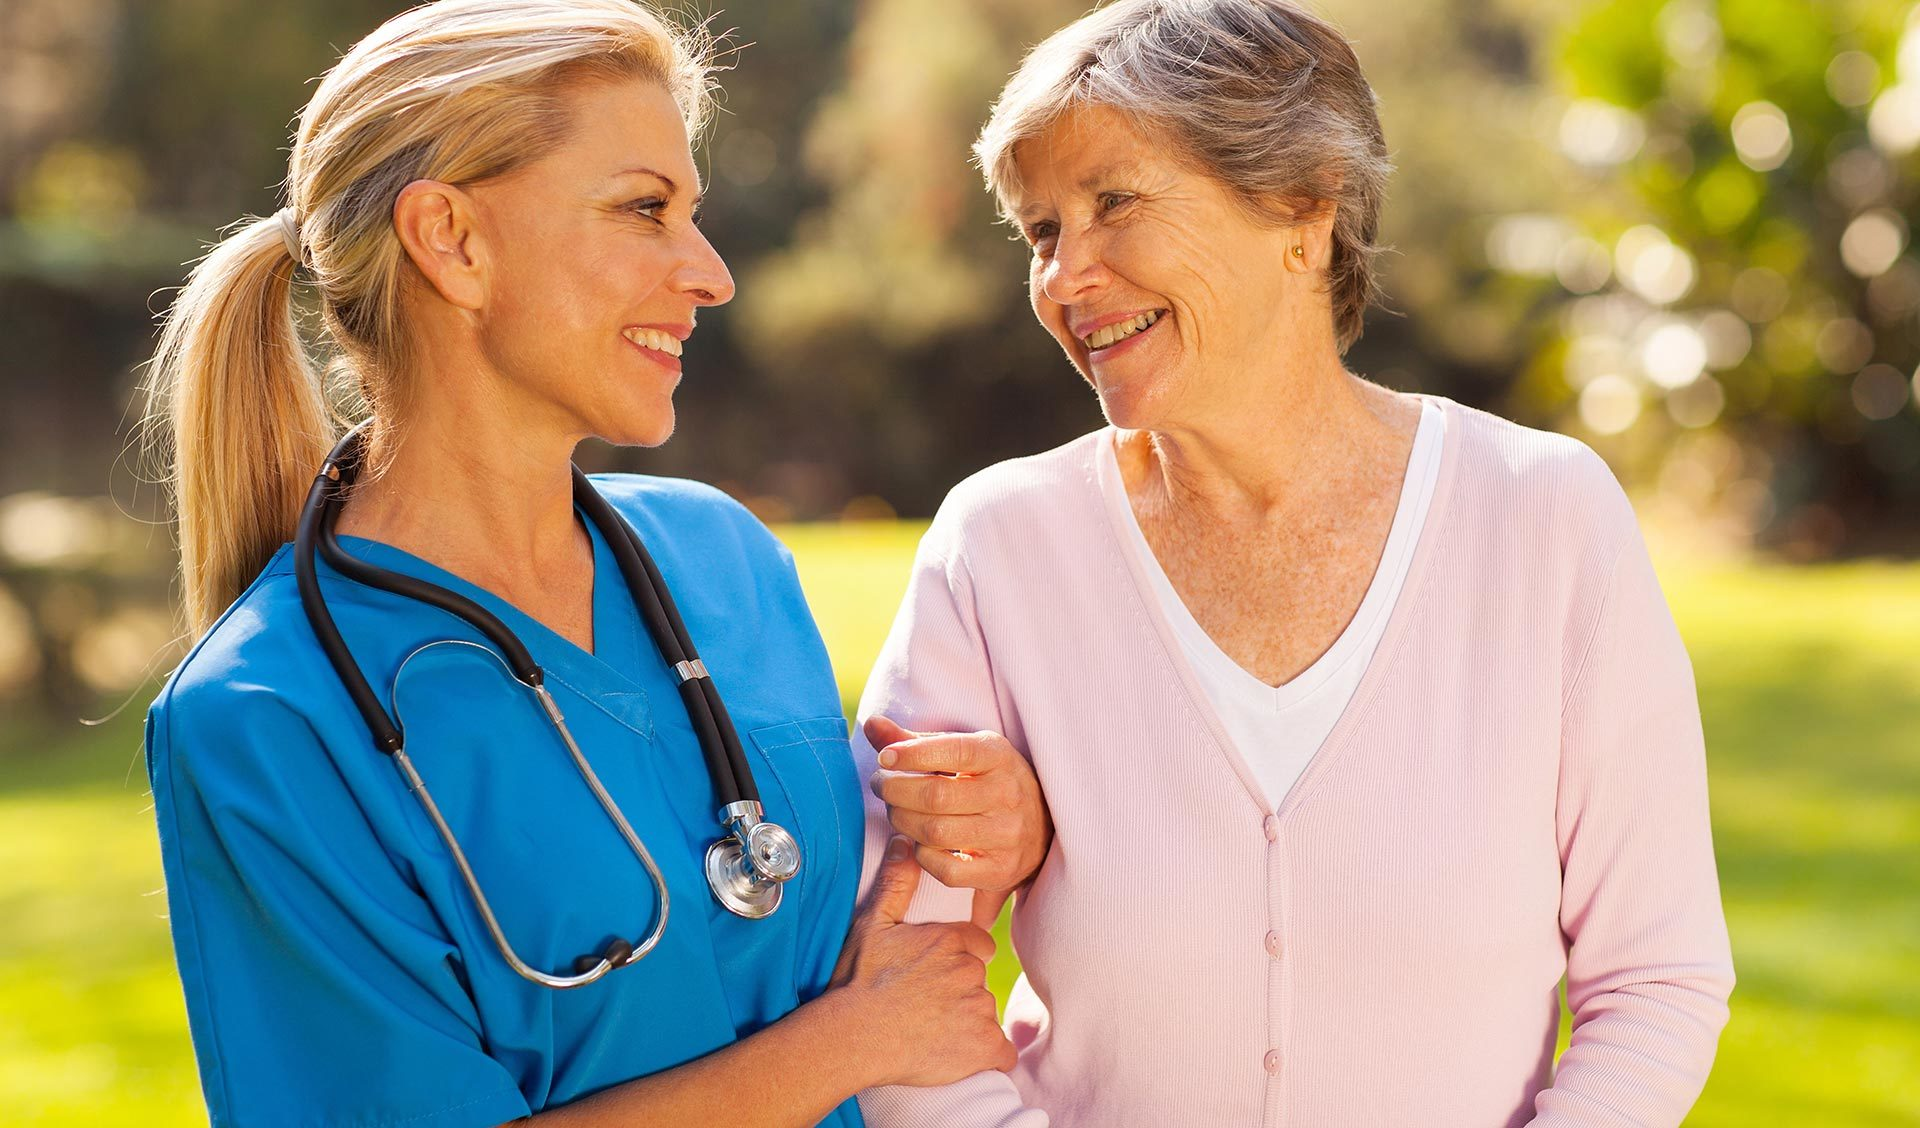 Home Care Service Nearby Home Care Services In Toronto Thornbrook Home Care